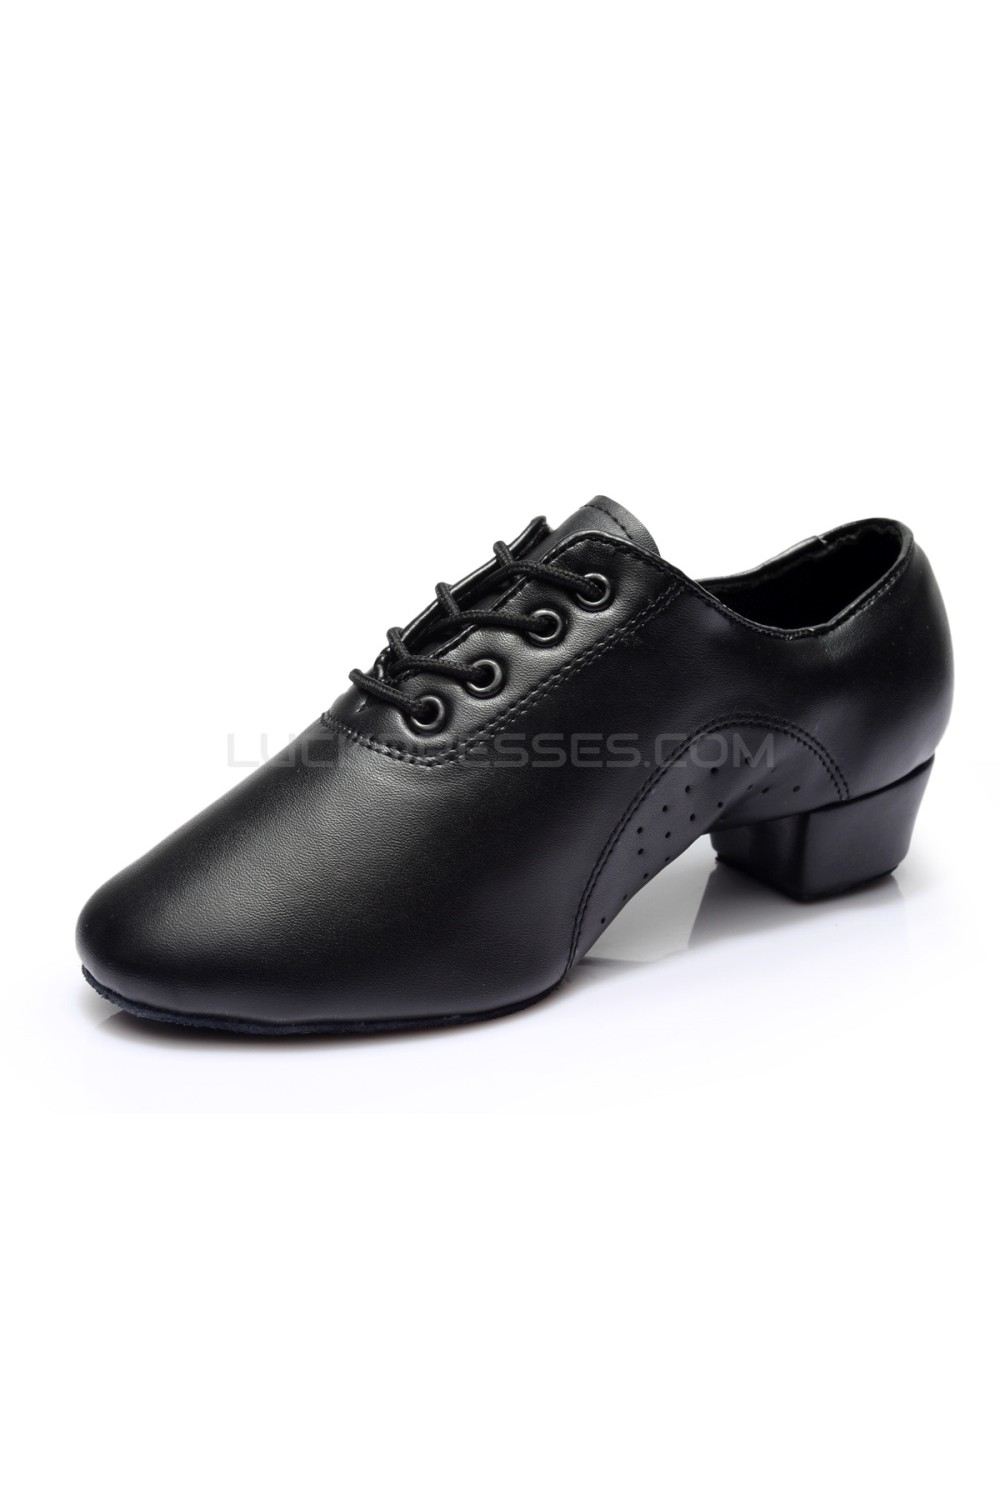 65c9f1b4f Men's Kids' Black Soft Leather Modern Ballroom Latin Dance Shoes Dance  Sneakers Flat Heel D603007